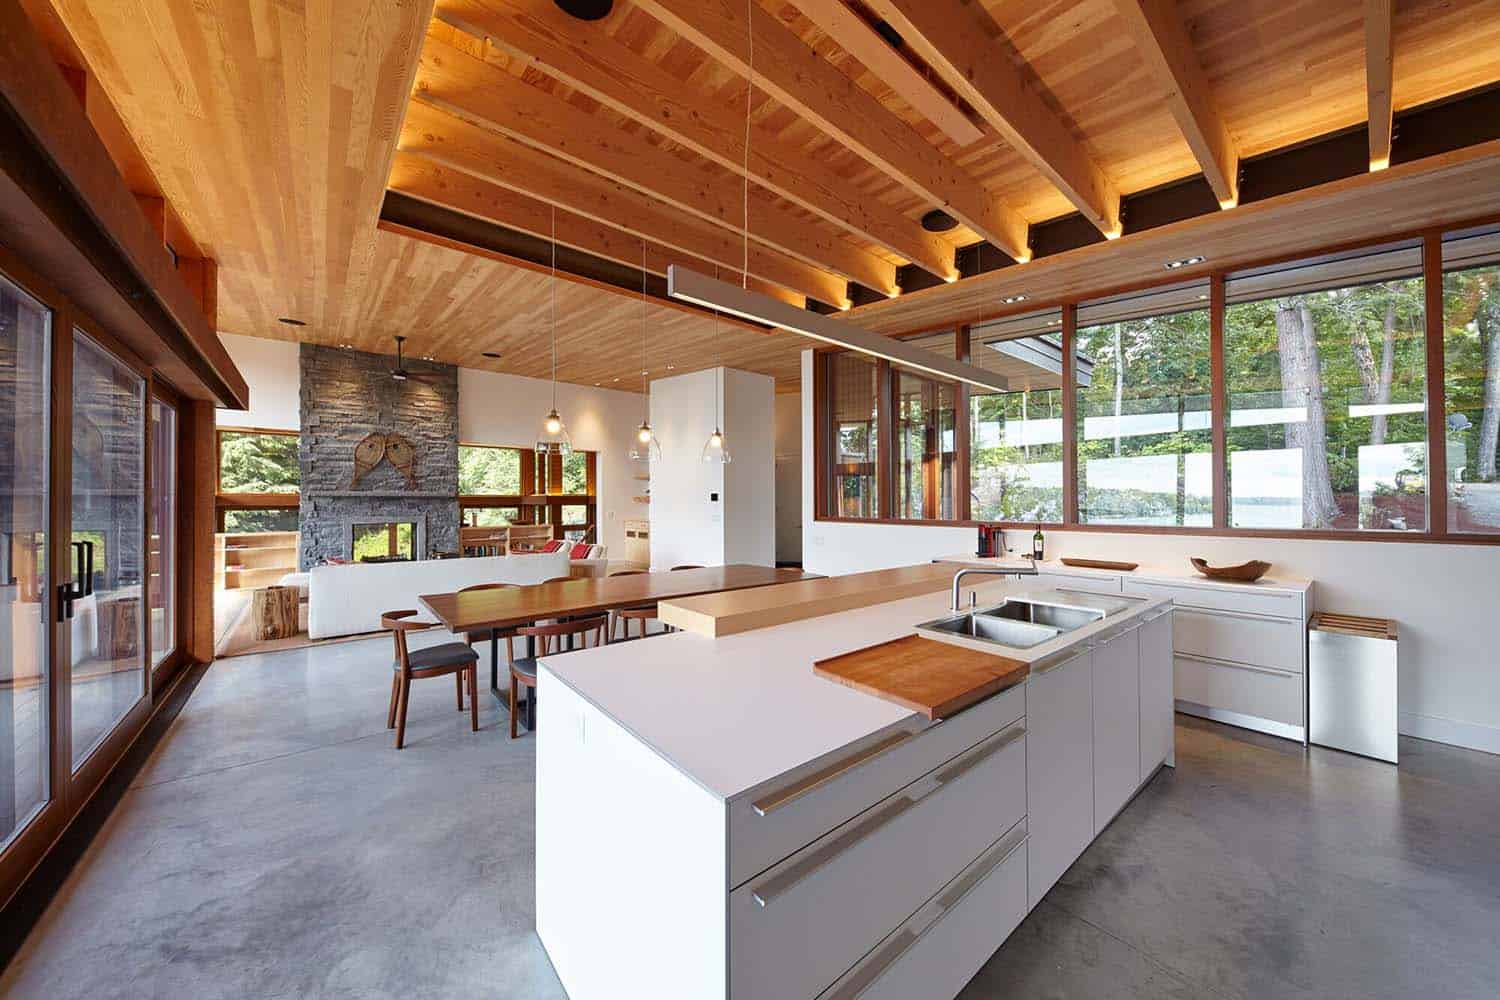 Stanley Bay Contemporary Cottage-Trevor McIvor Architect-09-1 Kindesign